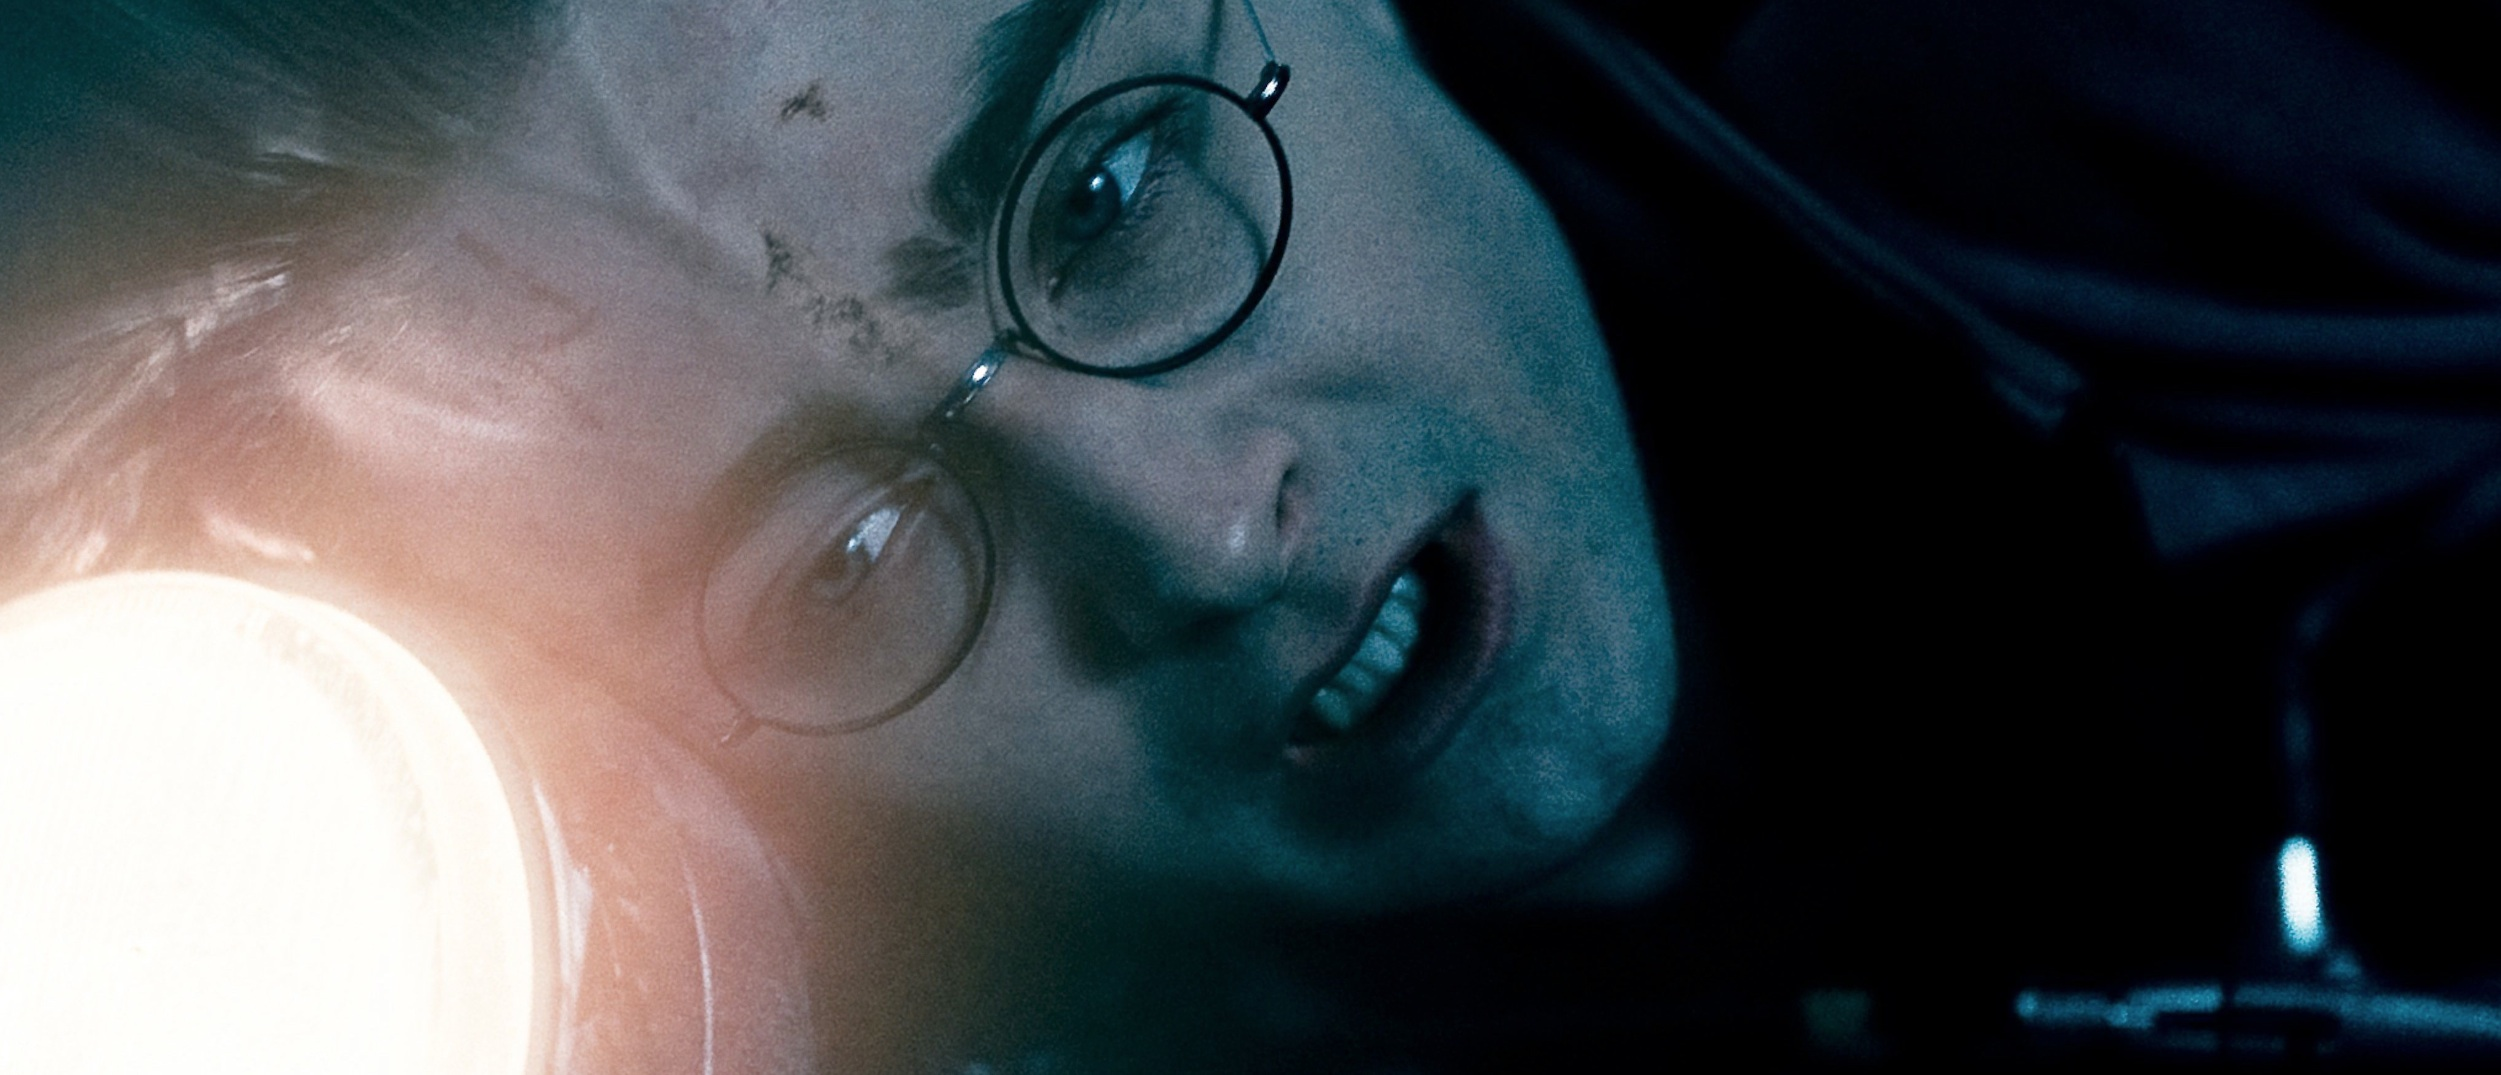 Daniel Radcliffe som Harry Potter